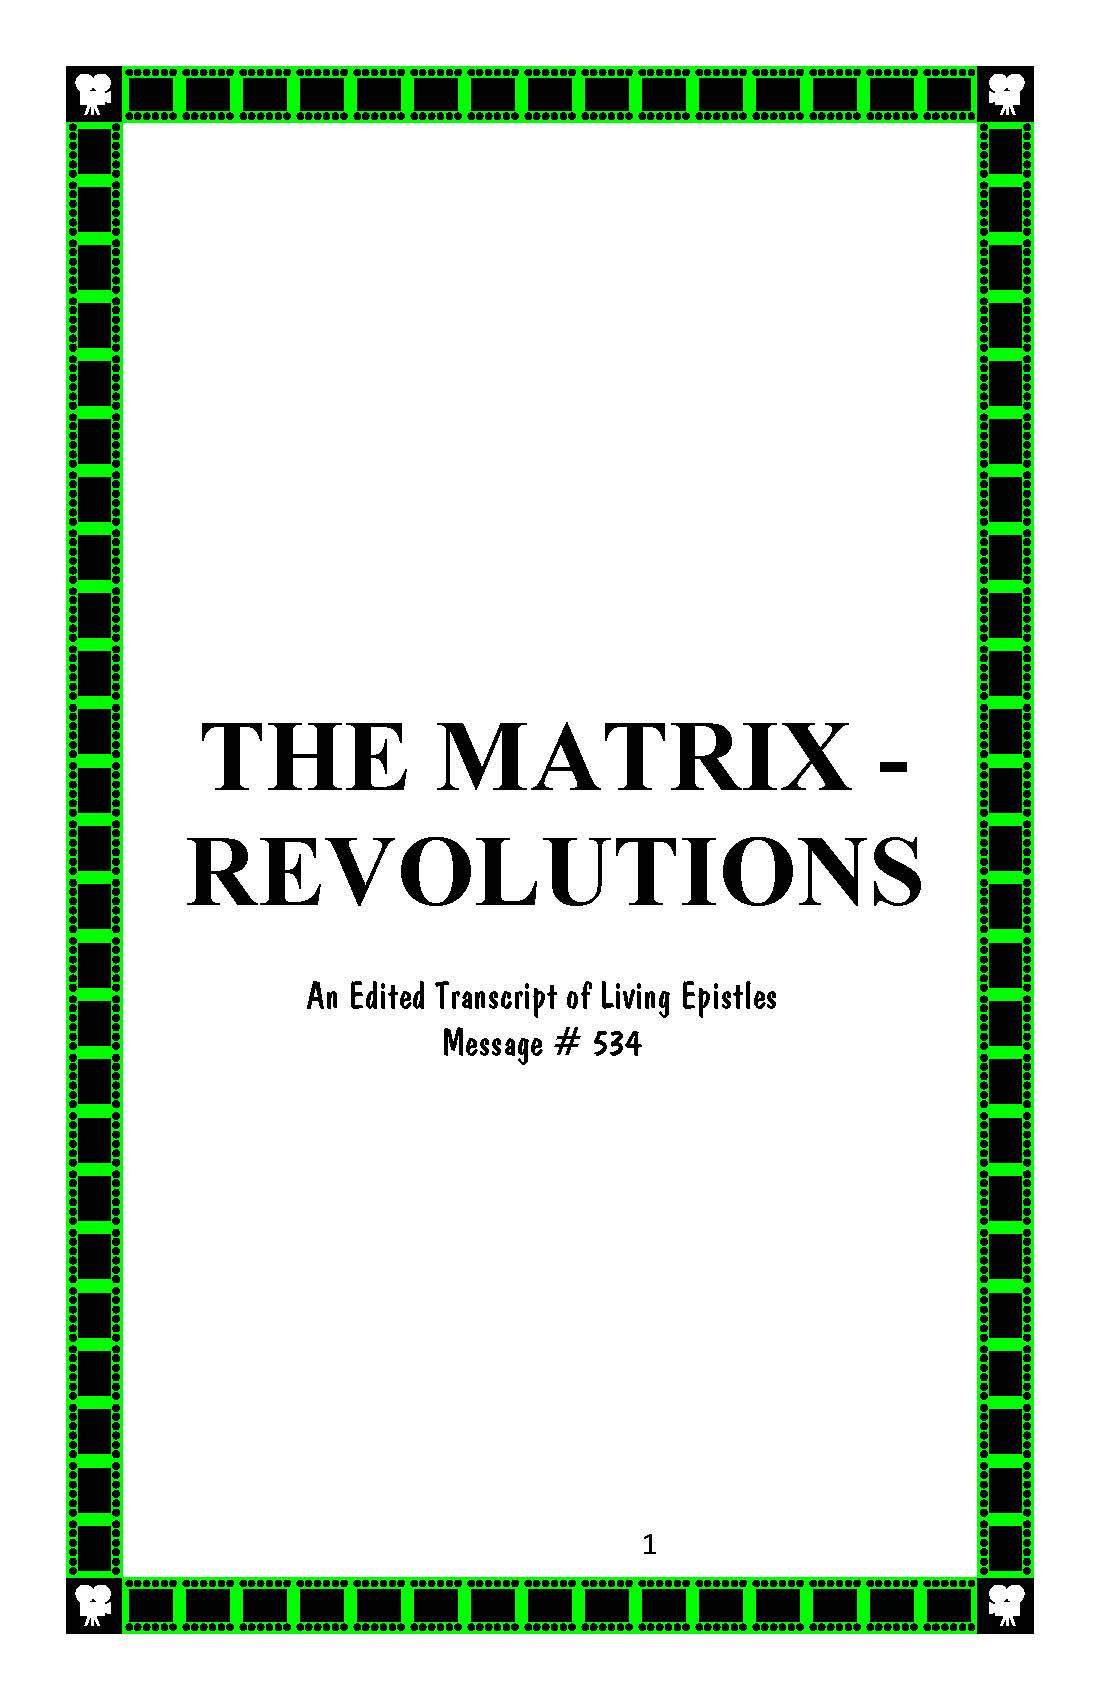 MATRIX REVOLUTIONS 534 LEM BOOK COVER 030116